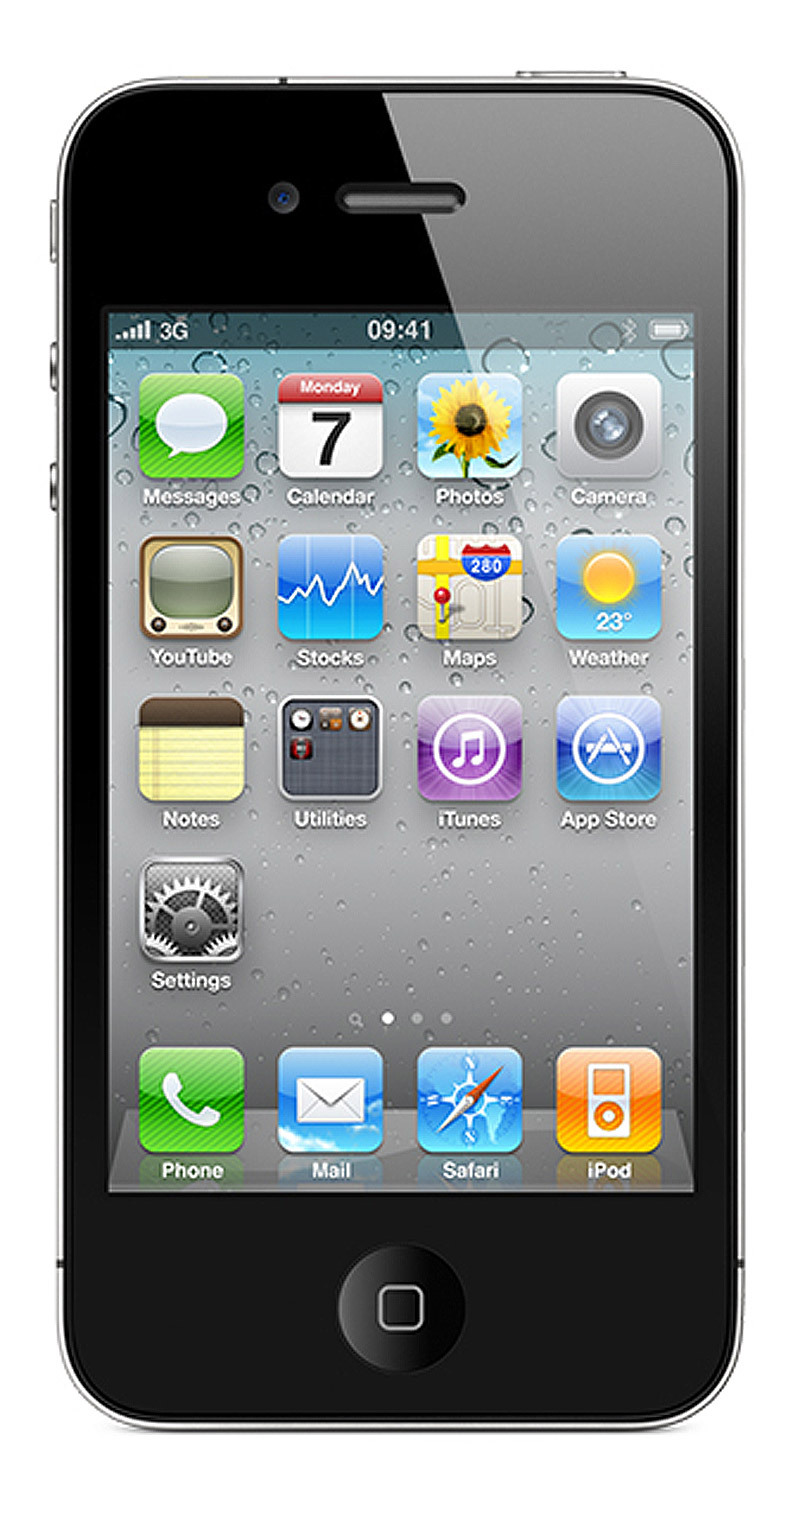 I orderd a Black iPhone 4 16GB. :D